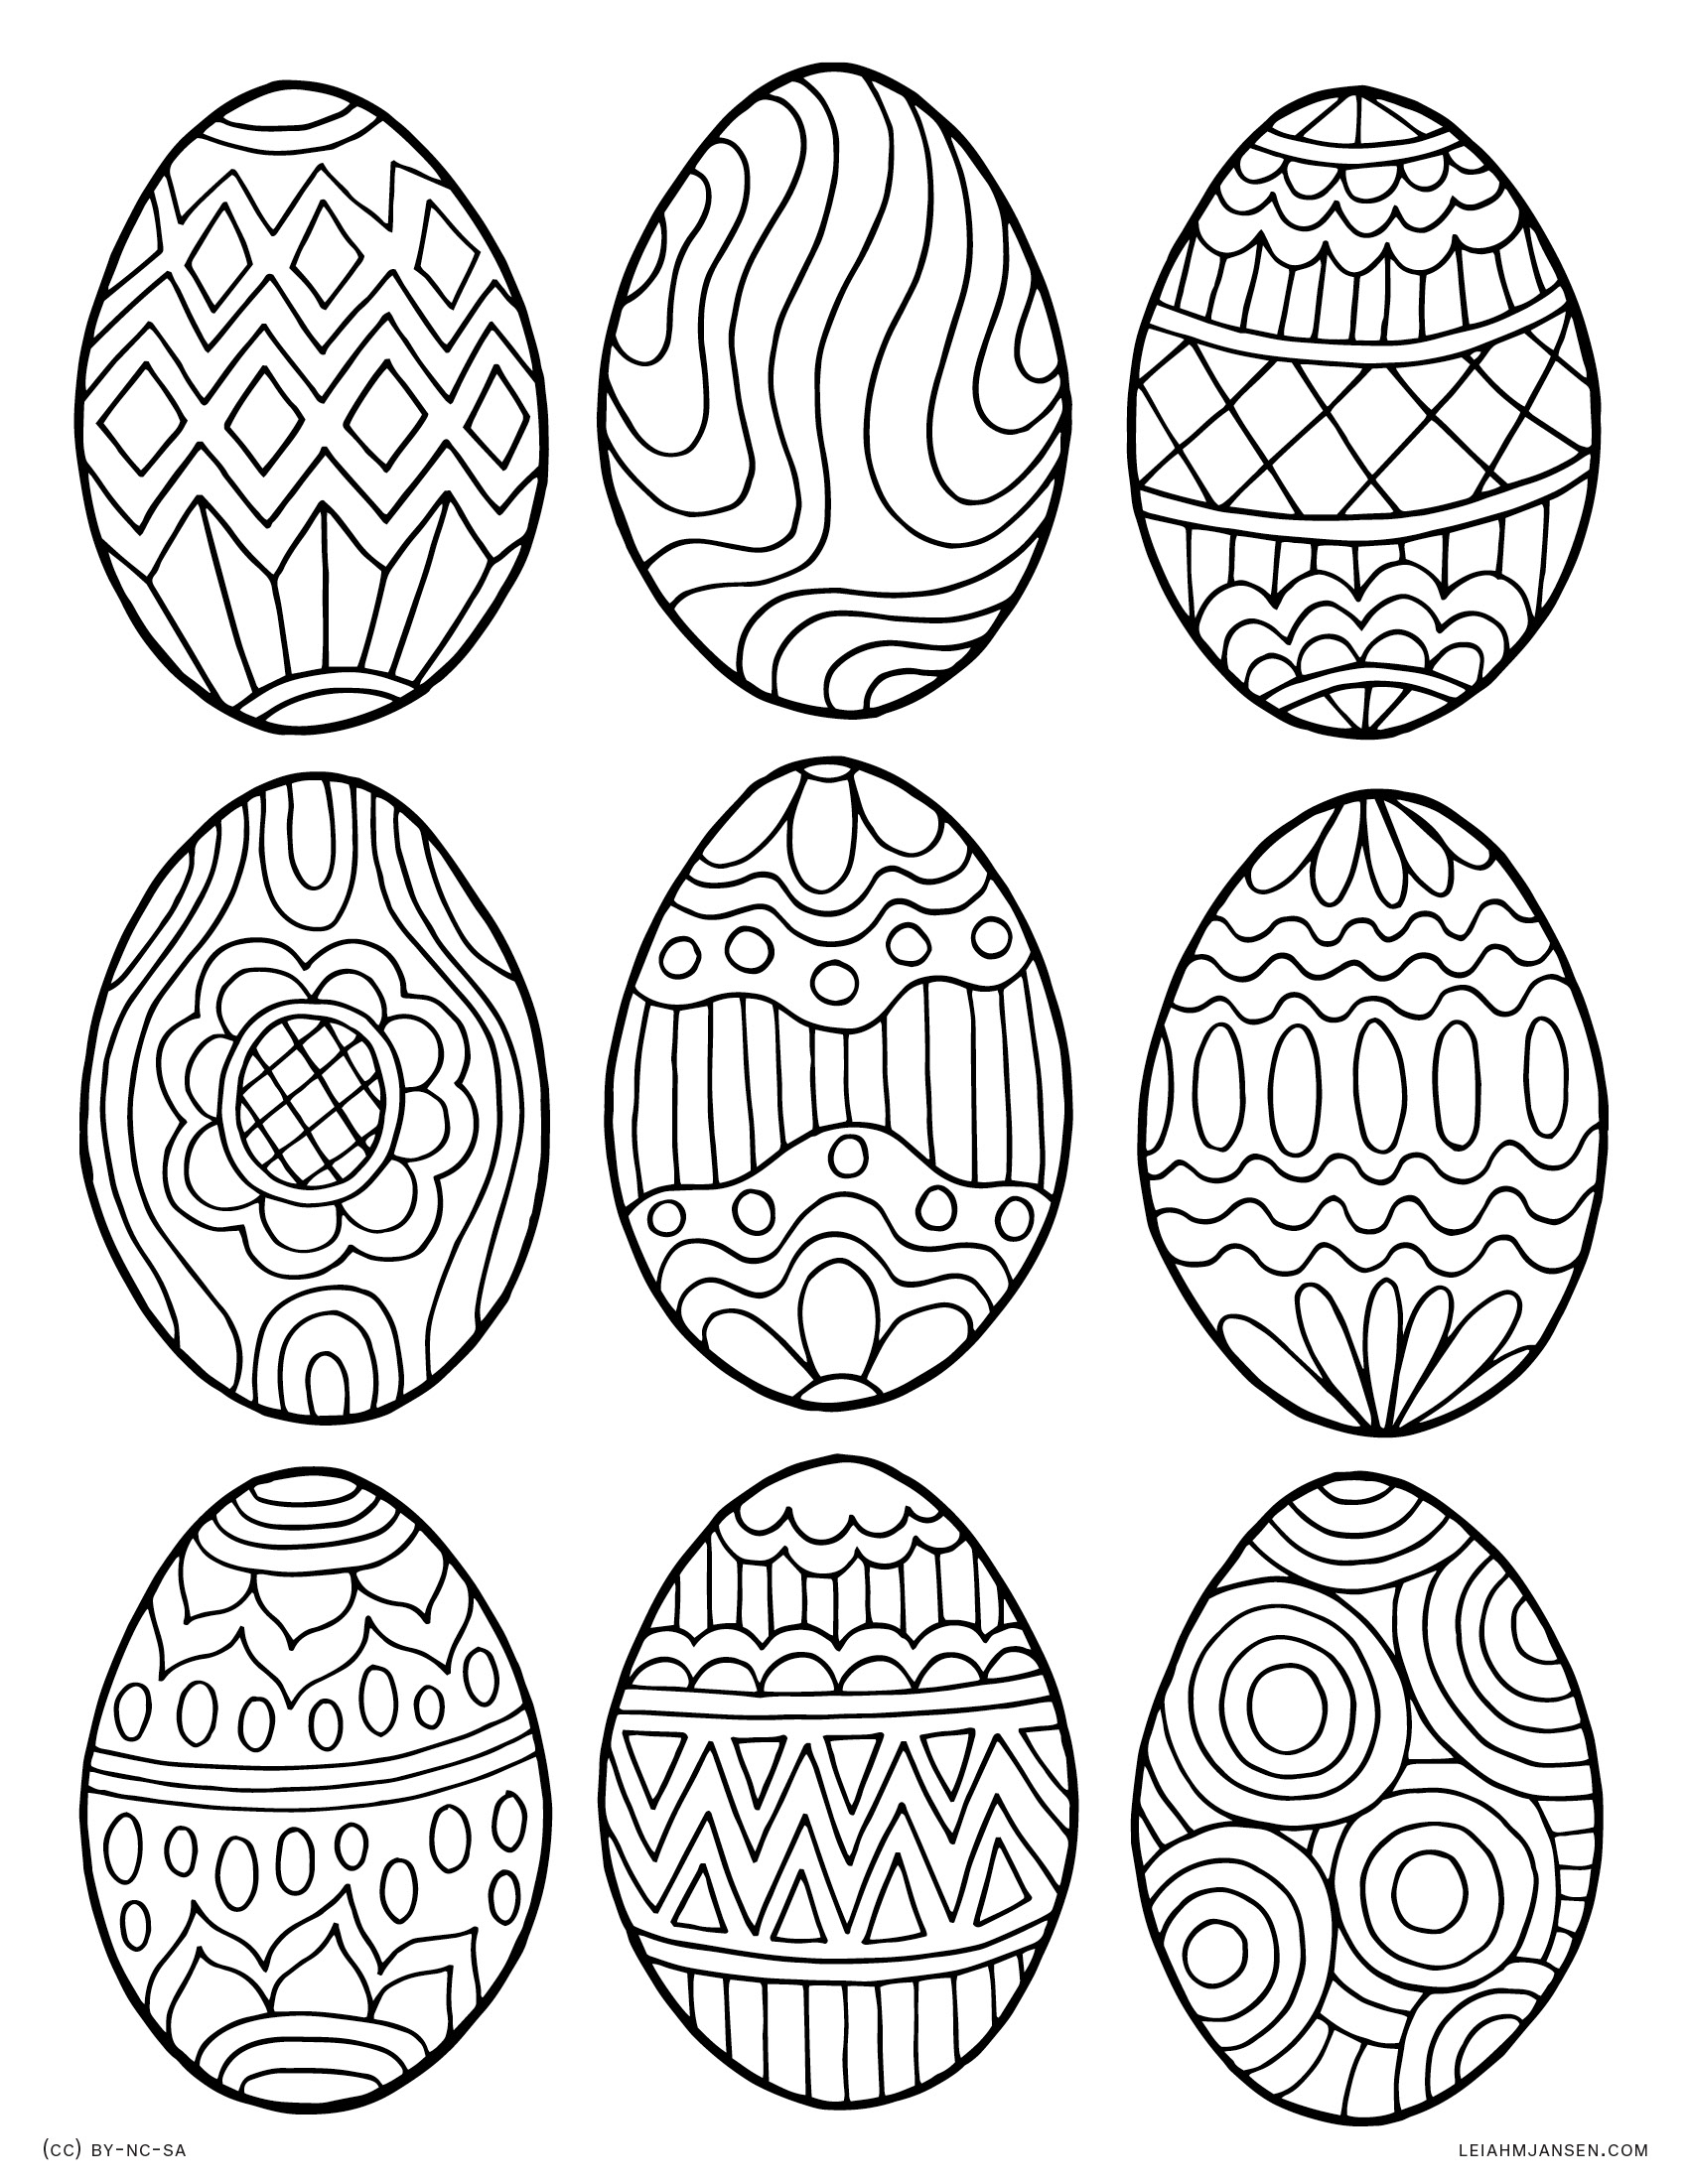 Decorated Easter Eggs - Happy Easter - Free Printable Coloring Page for Adults and Kids, by leiahmjansen.com